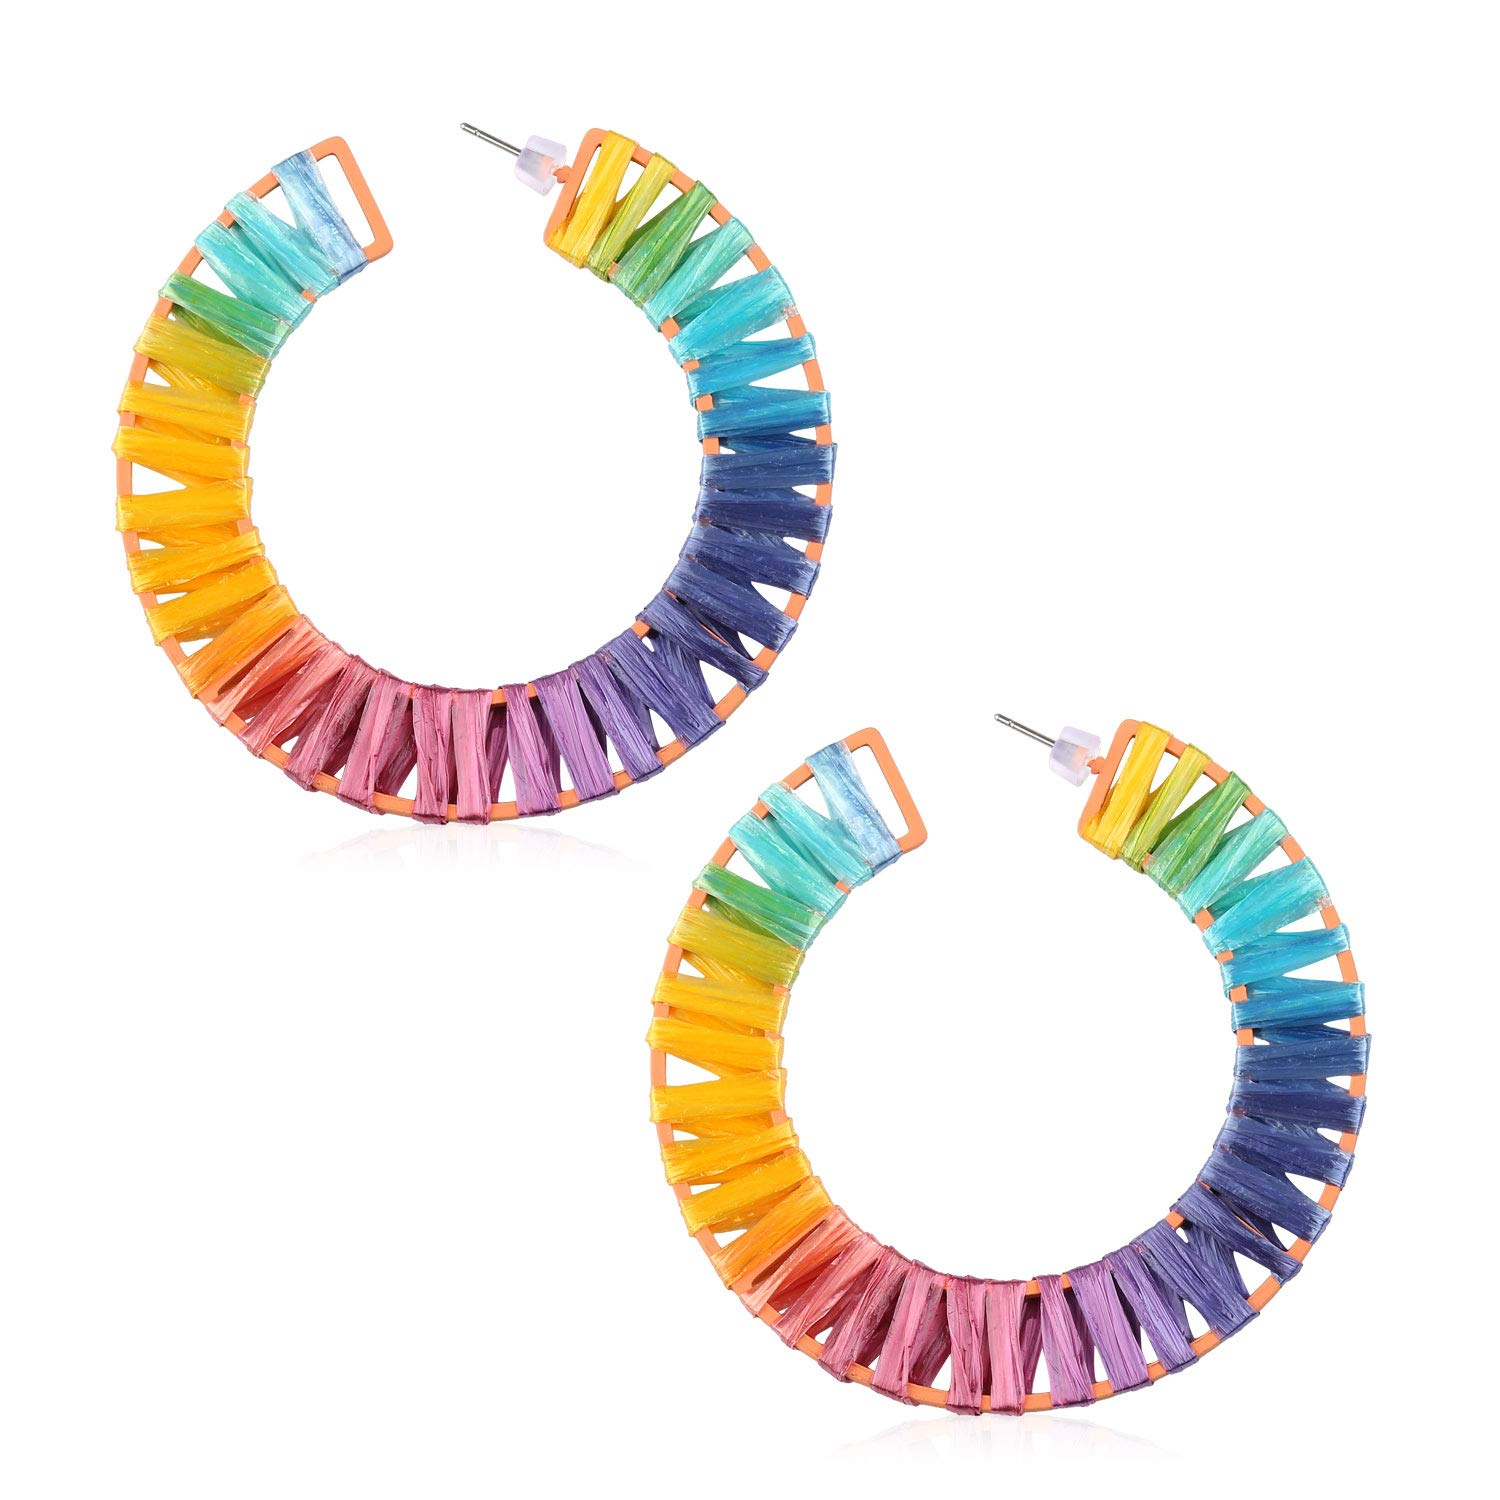 Statement Rainbow Rattan Drop Hoop Earrings for Women Handmade Raffia Geometric Round Earrings Lightweight Colorful Straw Dangle Earrings for Mother Sister Daily with Gushion Gift Box